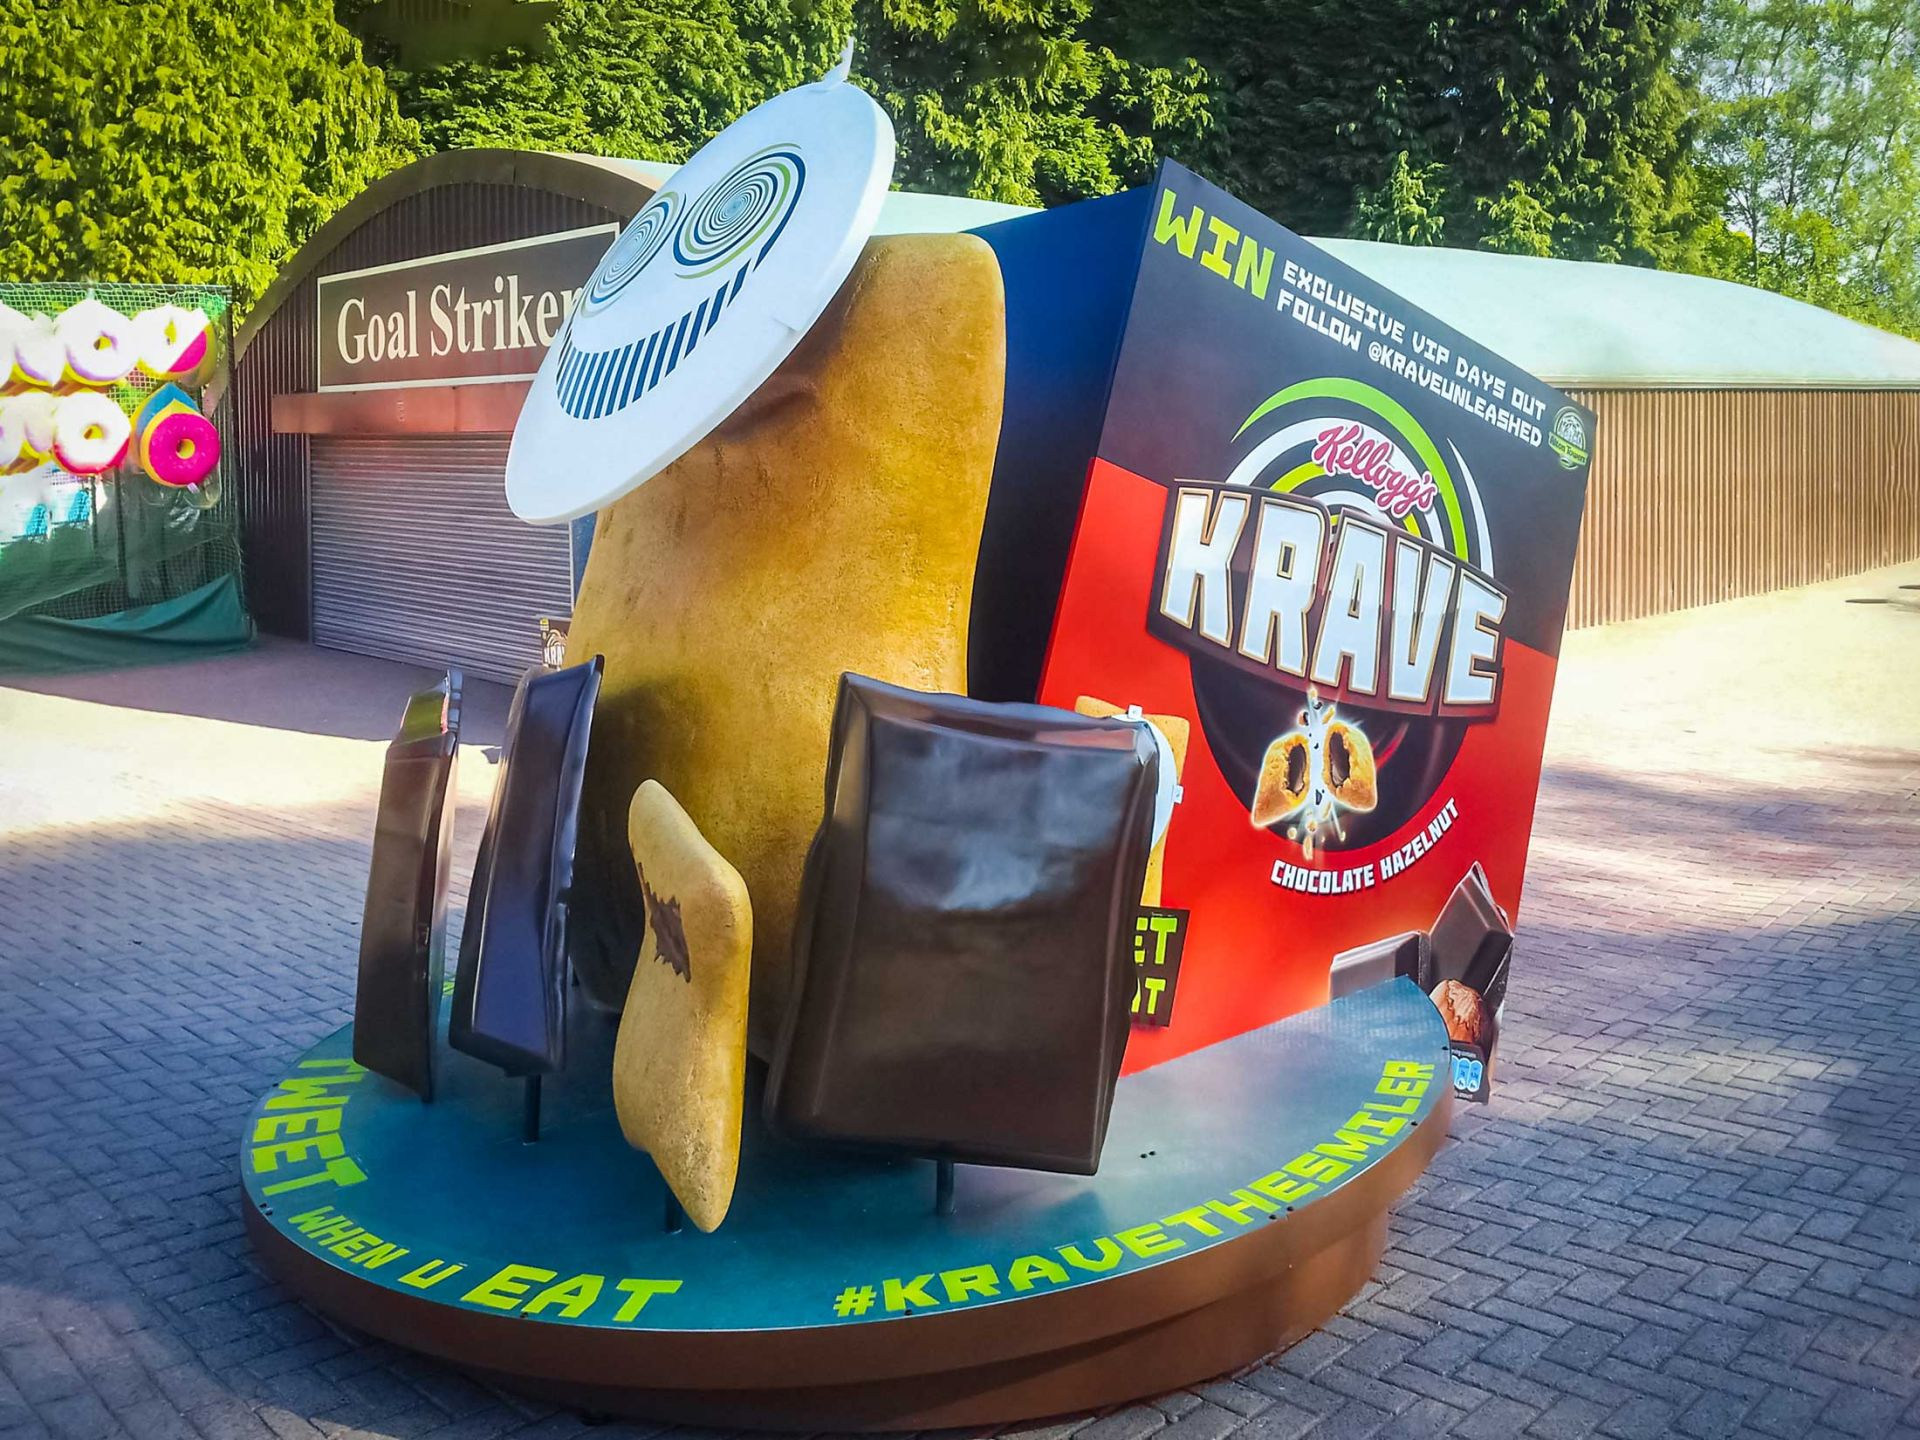 Giant cereal box prop with giant chocolate pieces on it's side at theme park.